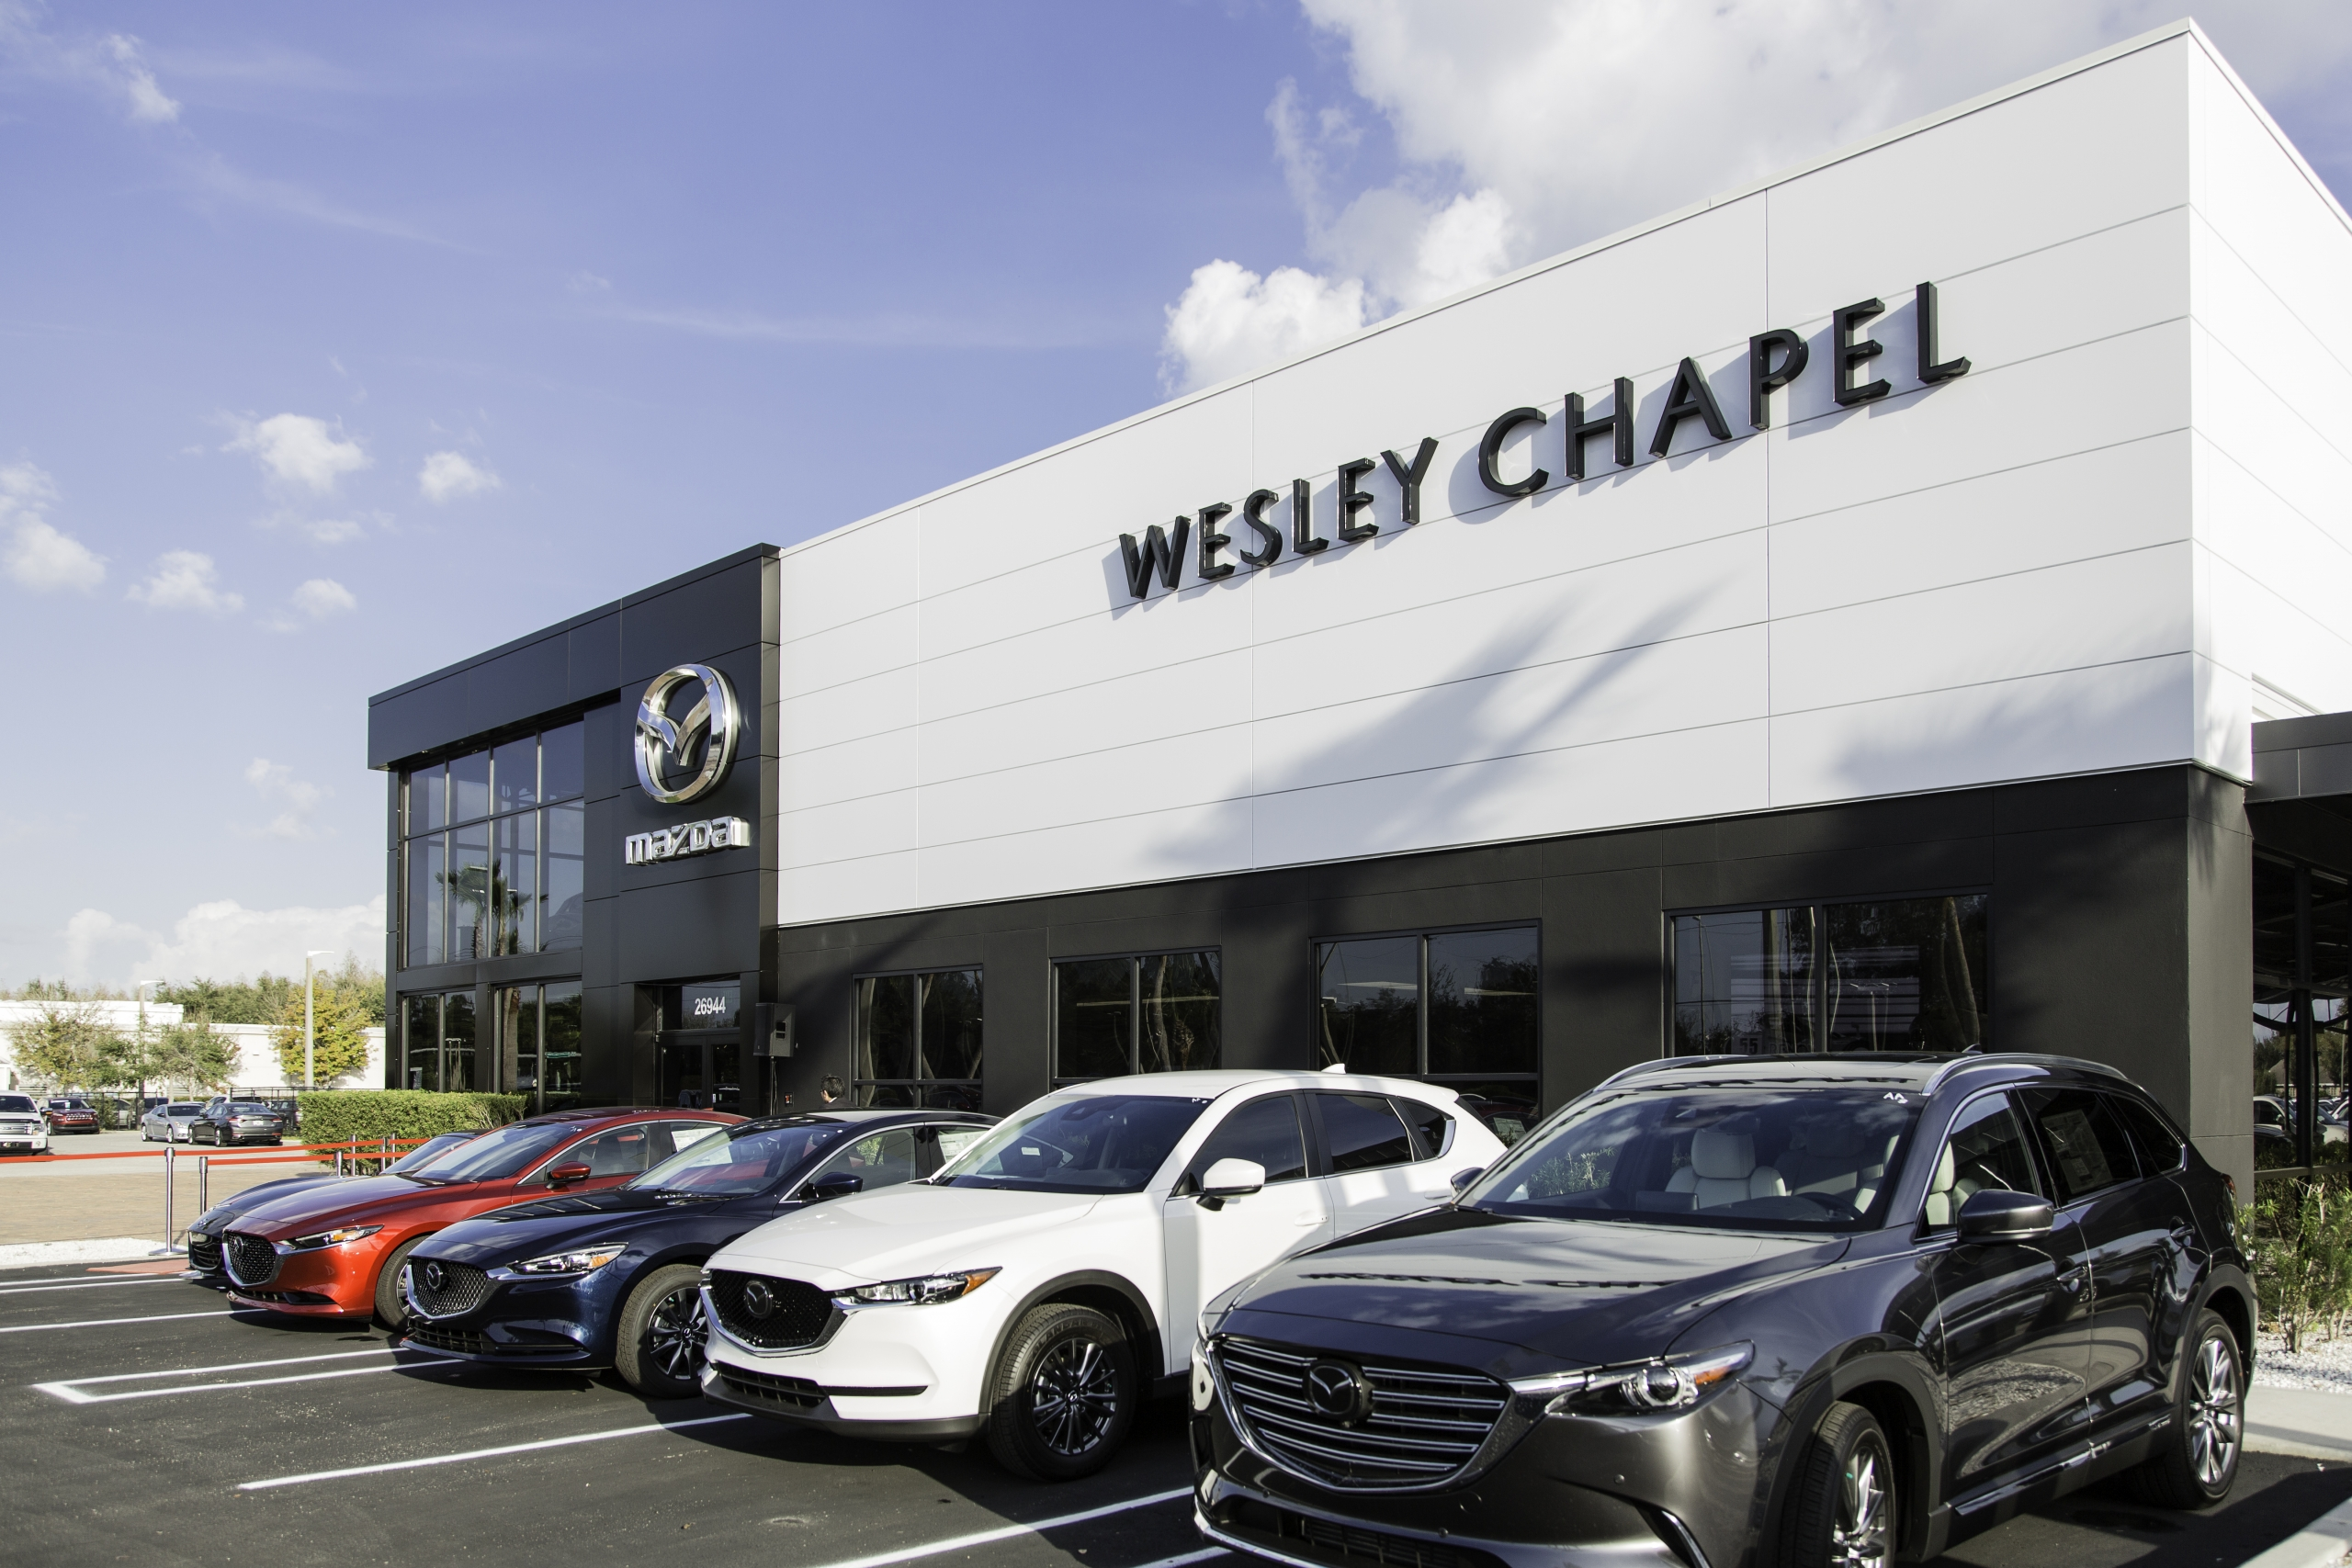 Mazda of Wesley Chapel dealership image